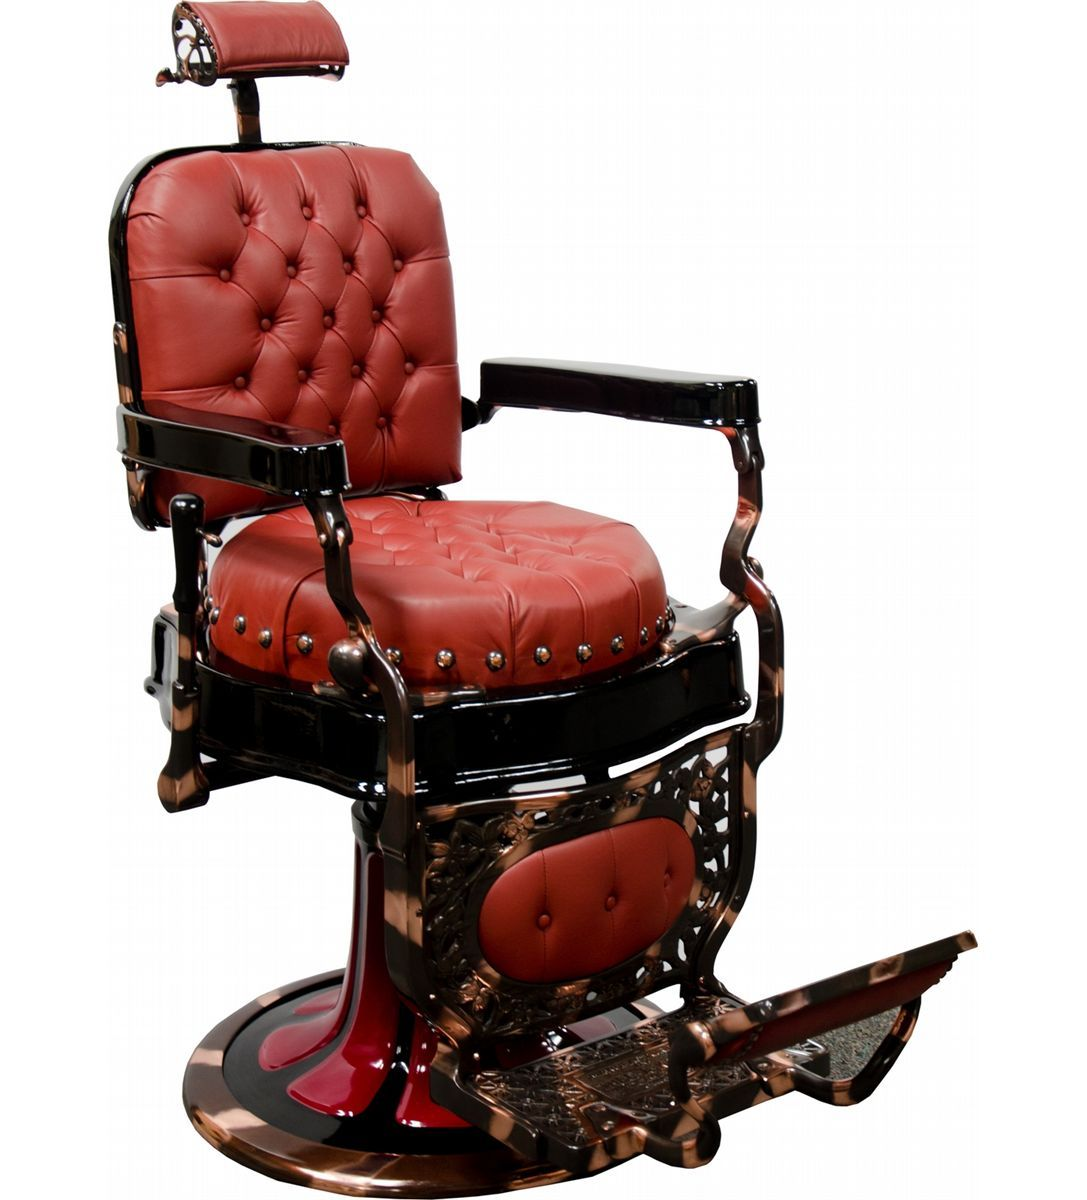 mobile barber chair bedroom fluffy vintage chairs google search who 39s next